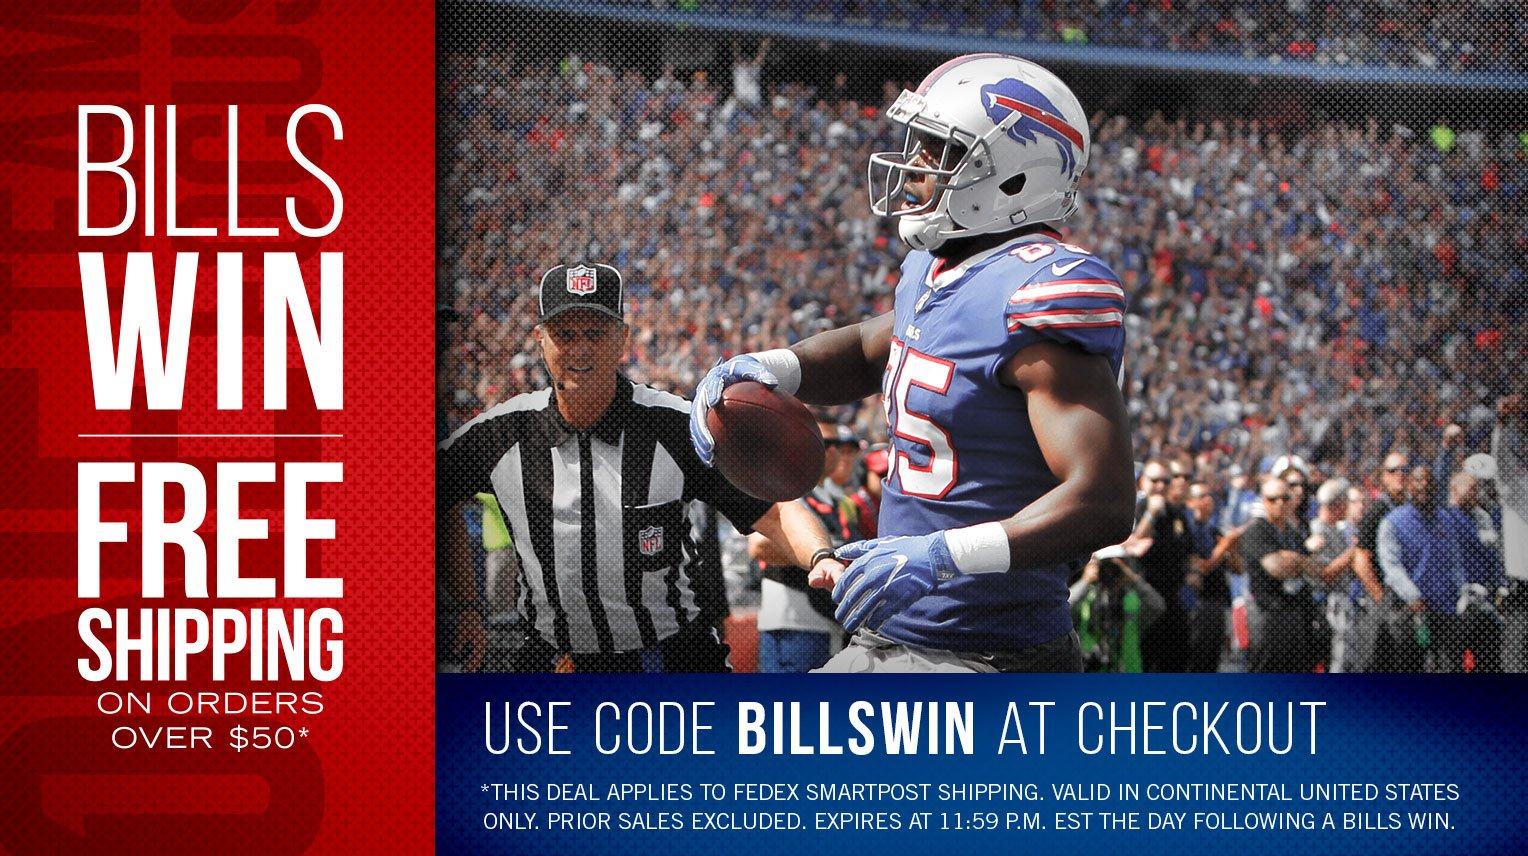 Bills win. You win.  Gear up with free shipping: https://t.co/3K3eFLG9cd https://t.co/x5D3rwXThX